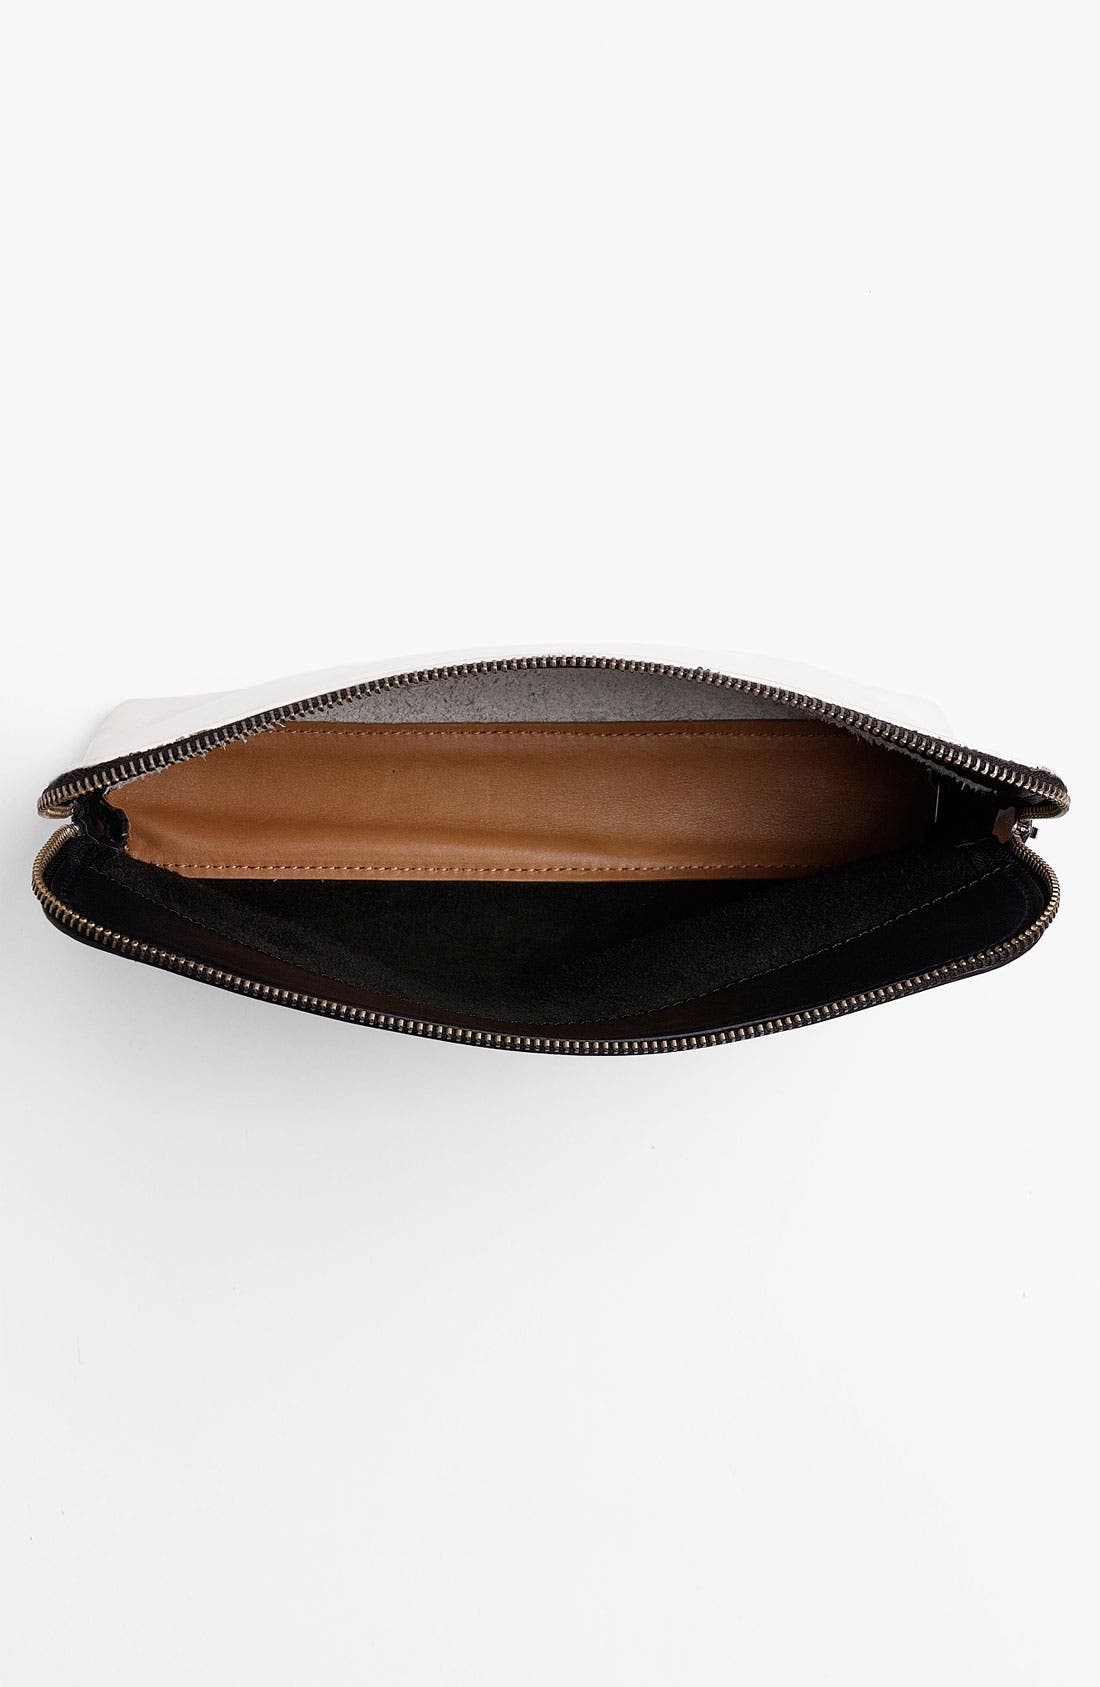 Alternate Image 3  - 3.1 Phillip Lim '31 Minute' Leather Bag